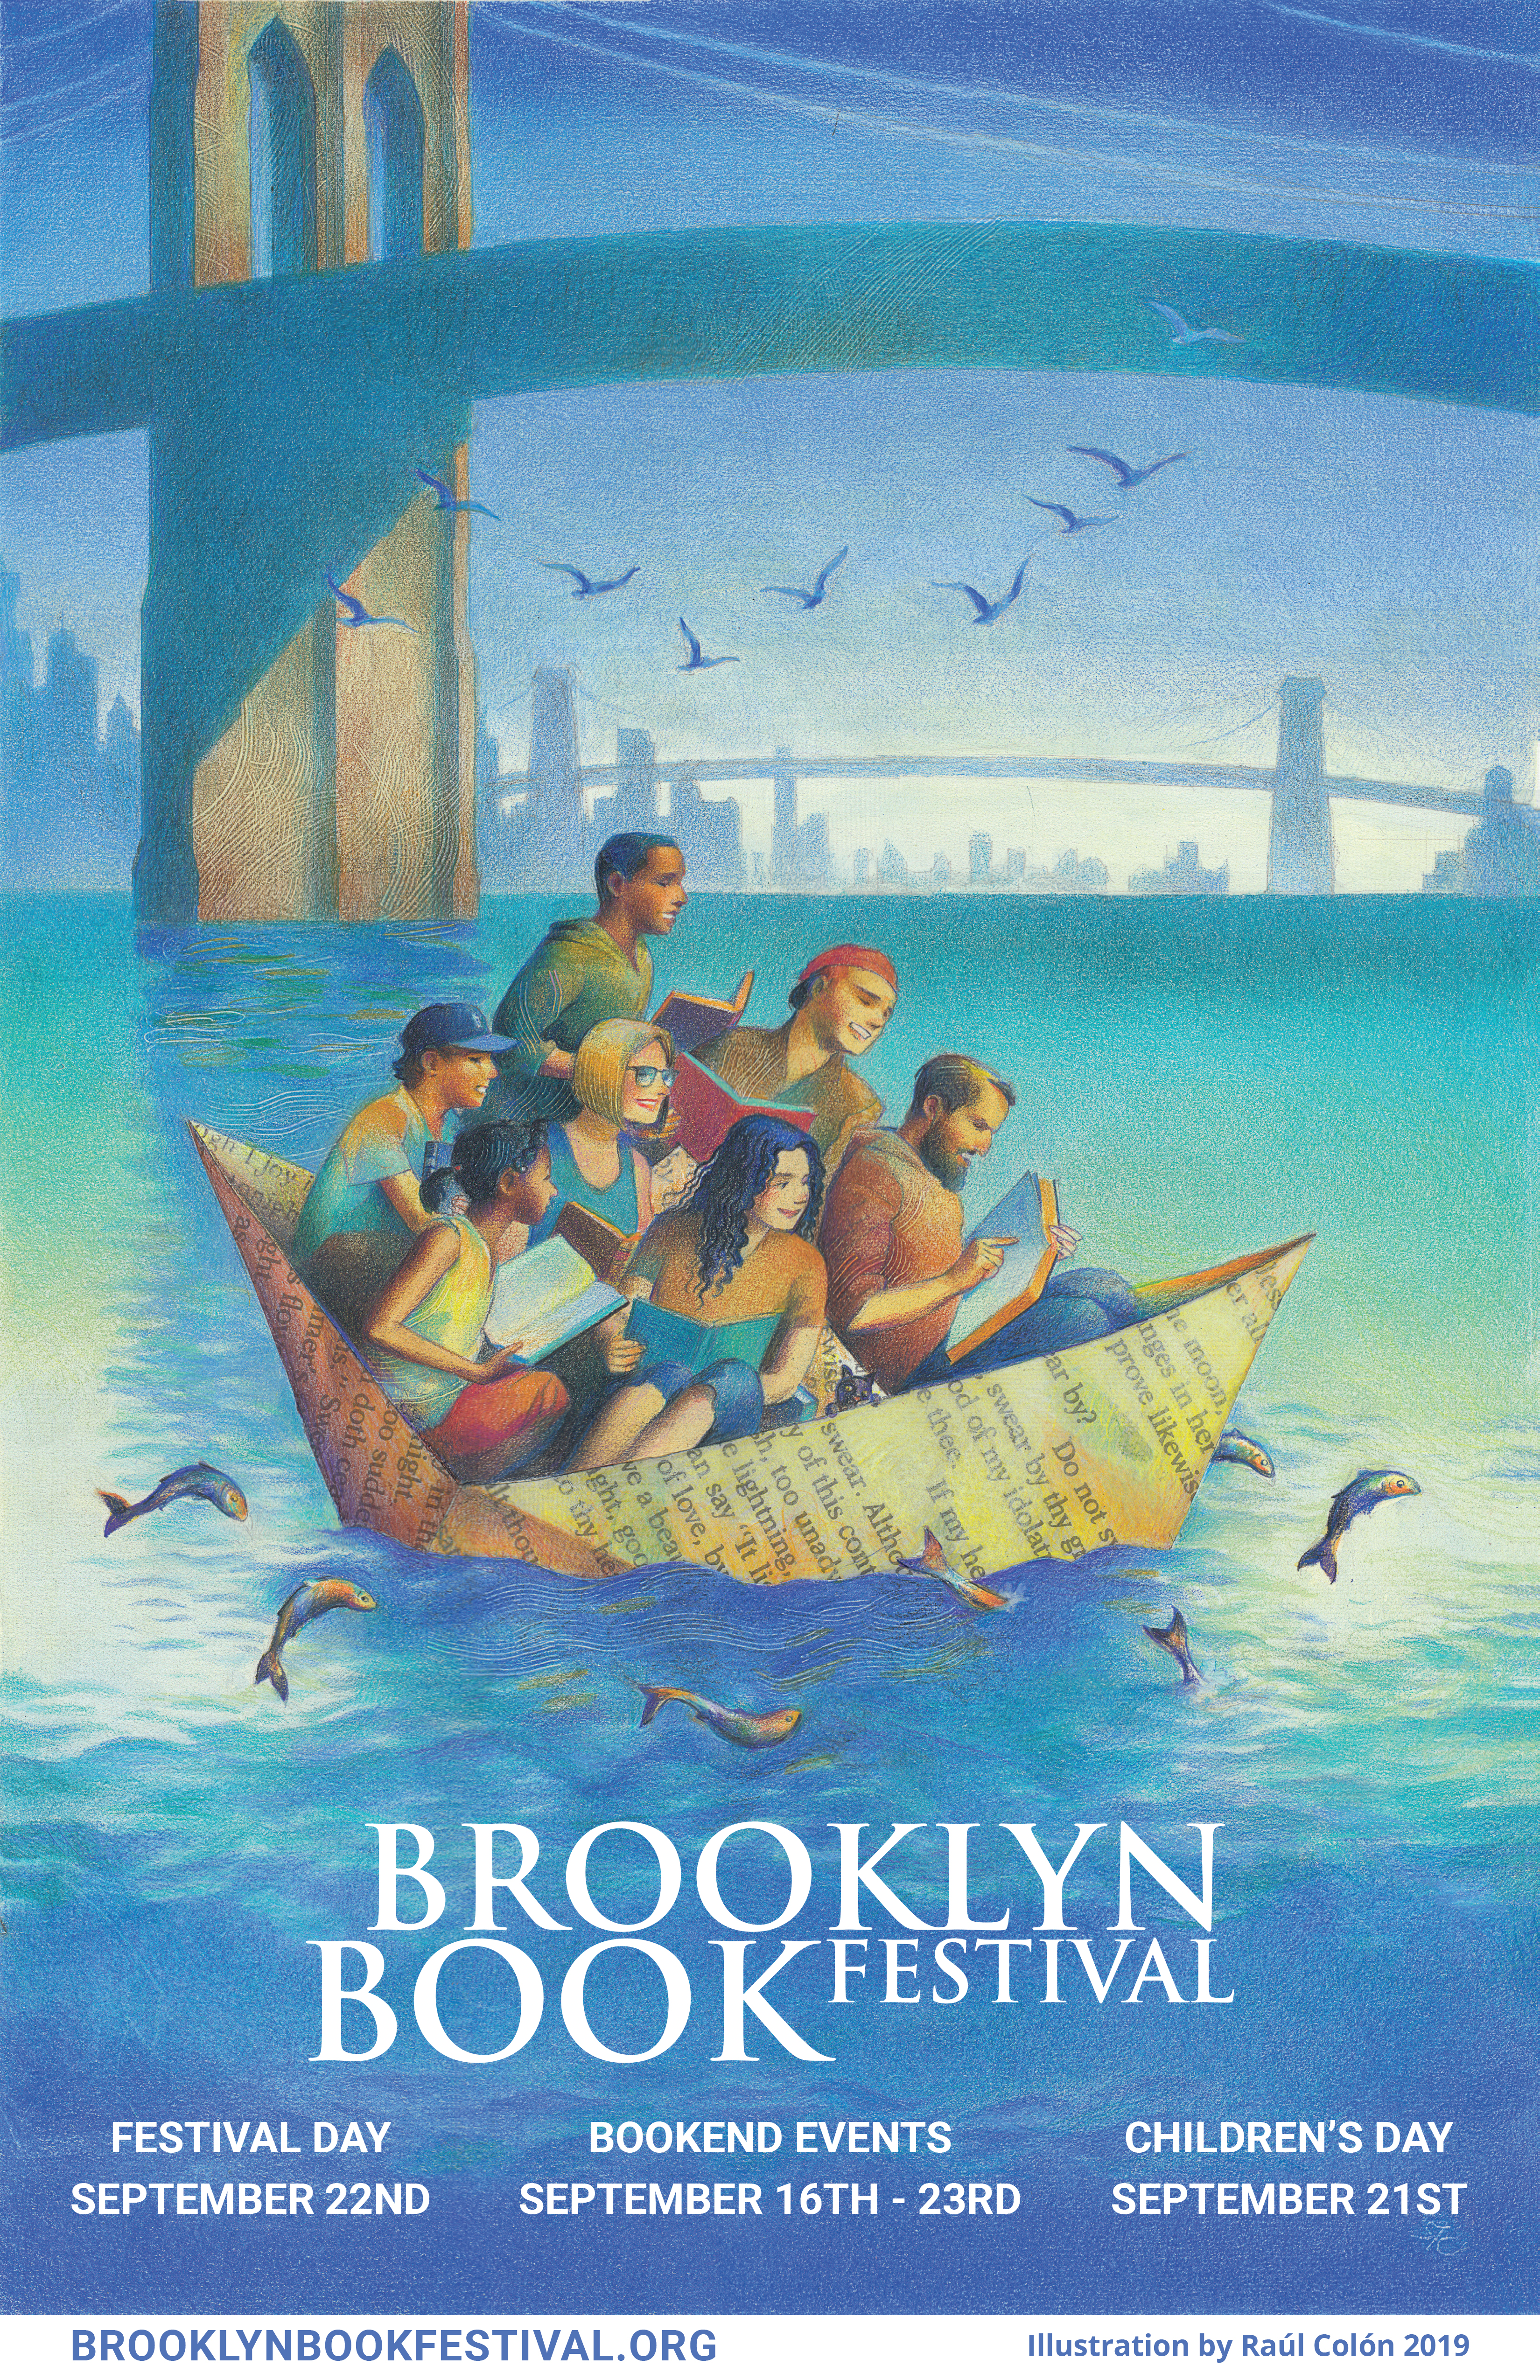 Magical artwork created by artist Raúl Colón illustrates the Brooklyn Book Festival's poster this year. The poster was unveiled this morning. Graphic courtesy of Brooklyn Book Festival